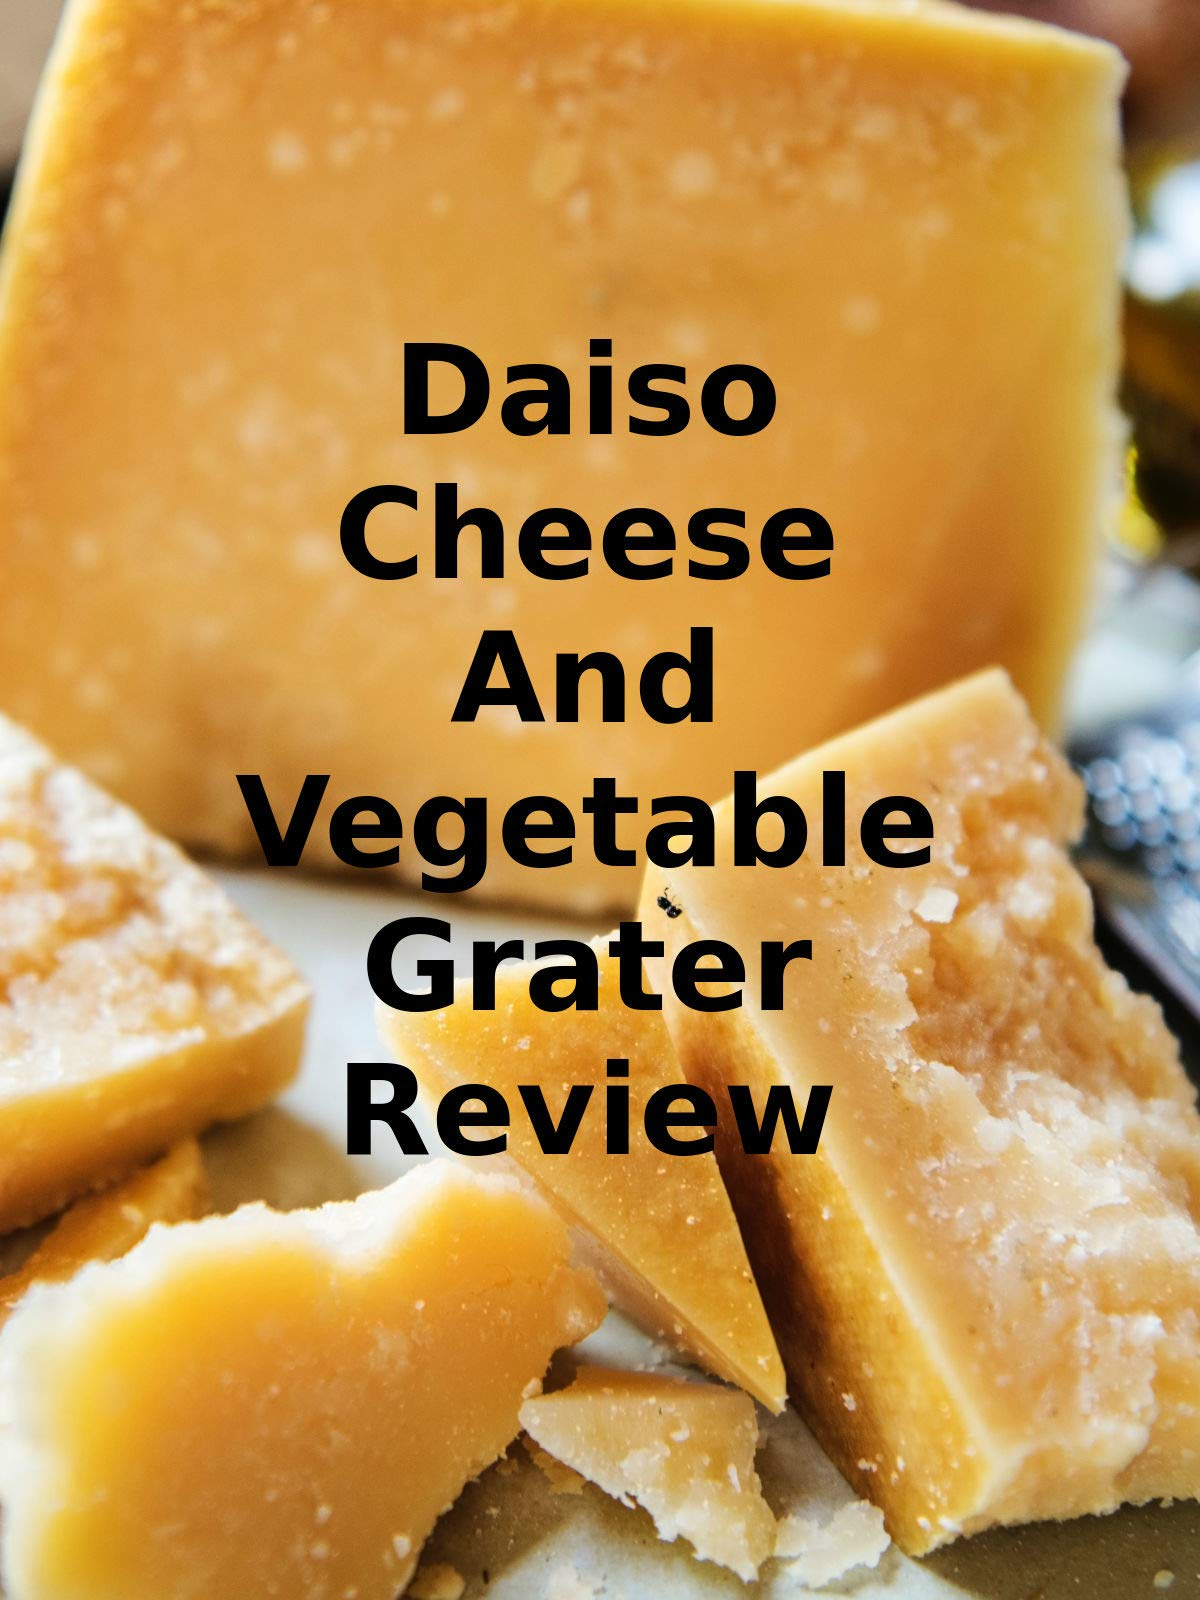 Review: Daiso Cheese And Vegetable Grater Review on Amazon Prime Instant Video UK